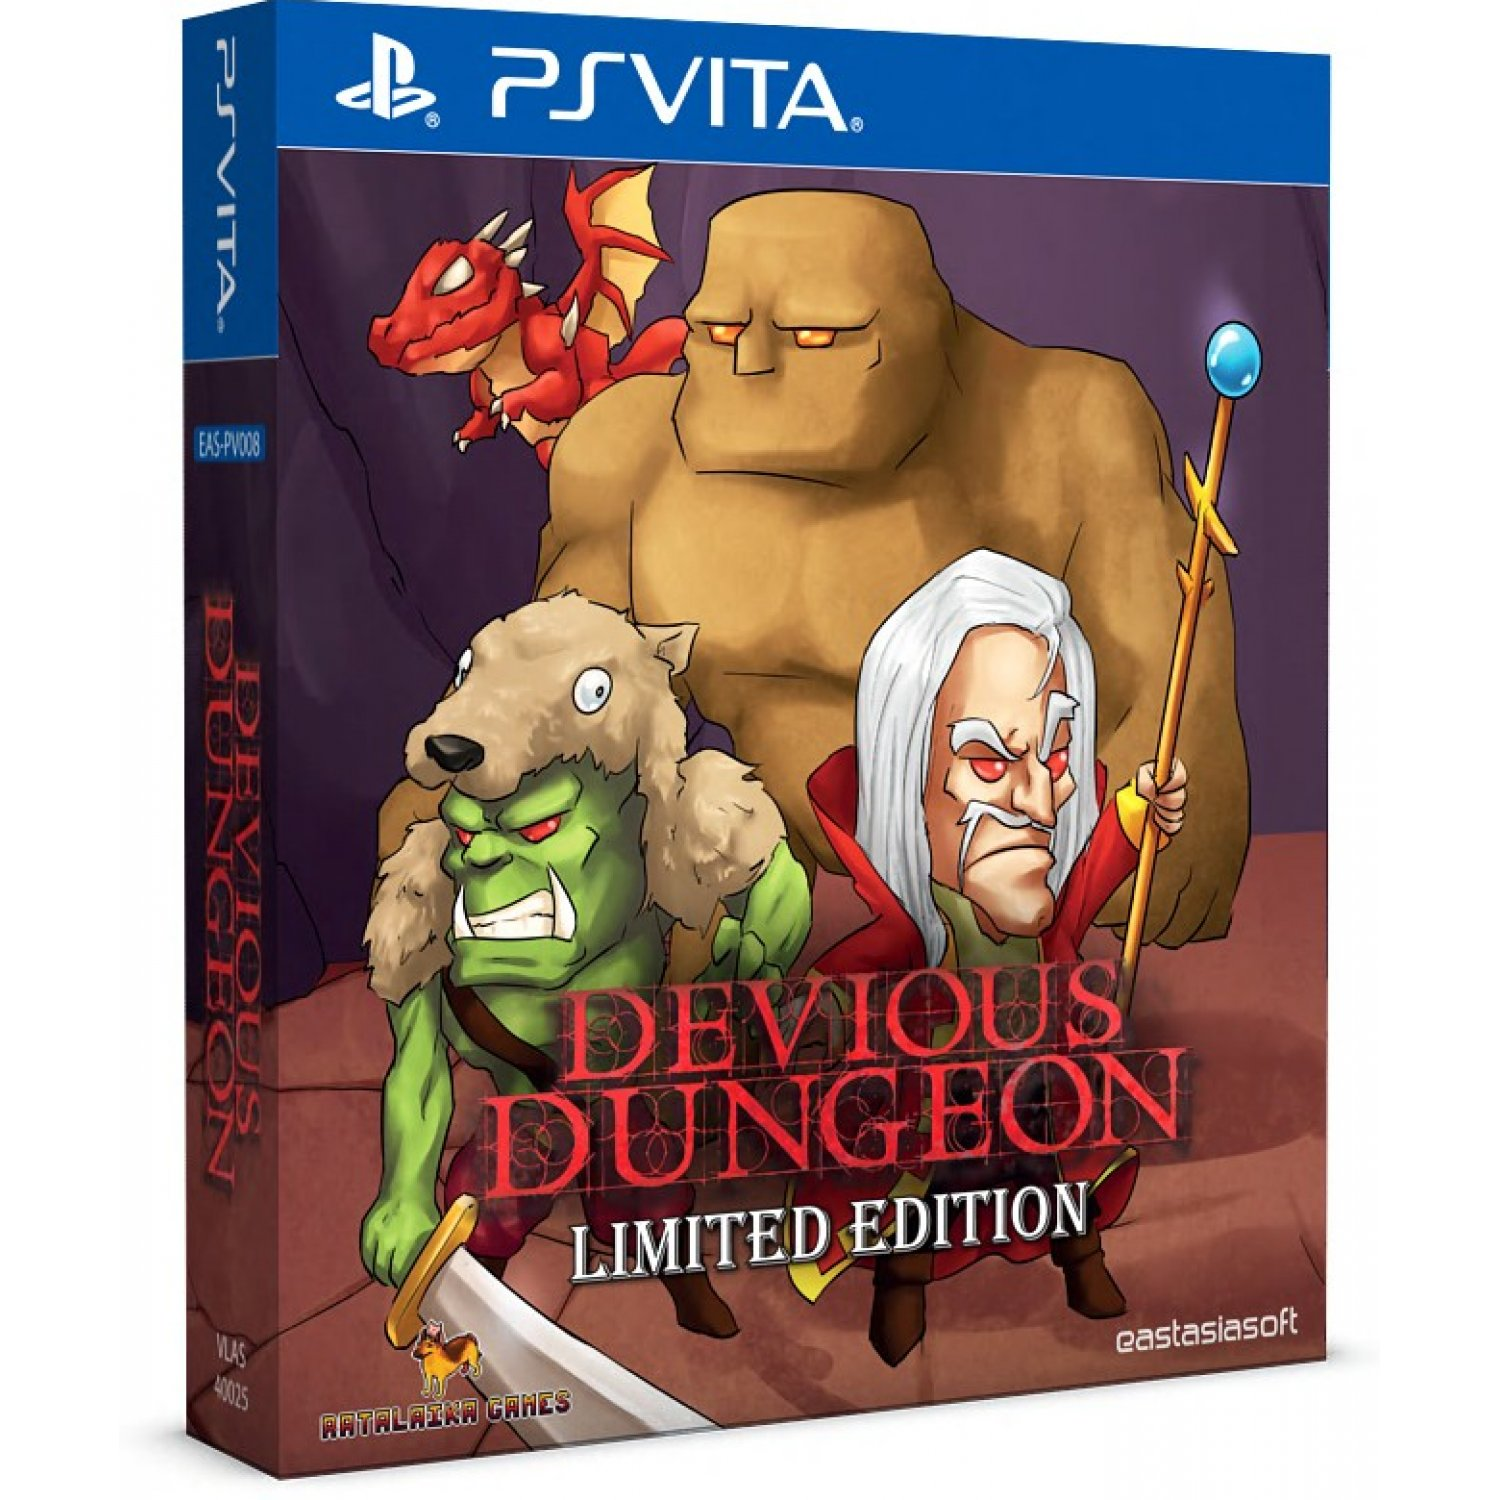 devious-dungeon-limited-edition-569247.1.jpg